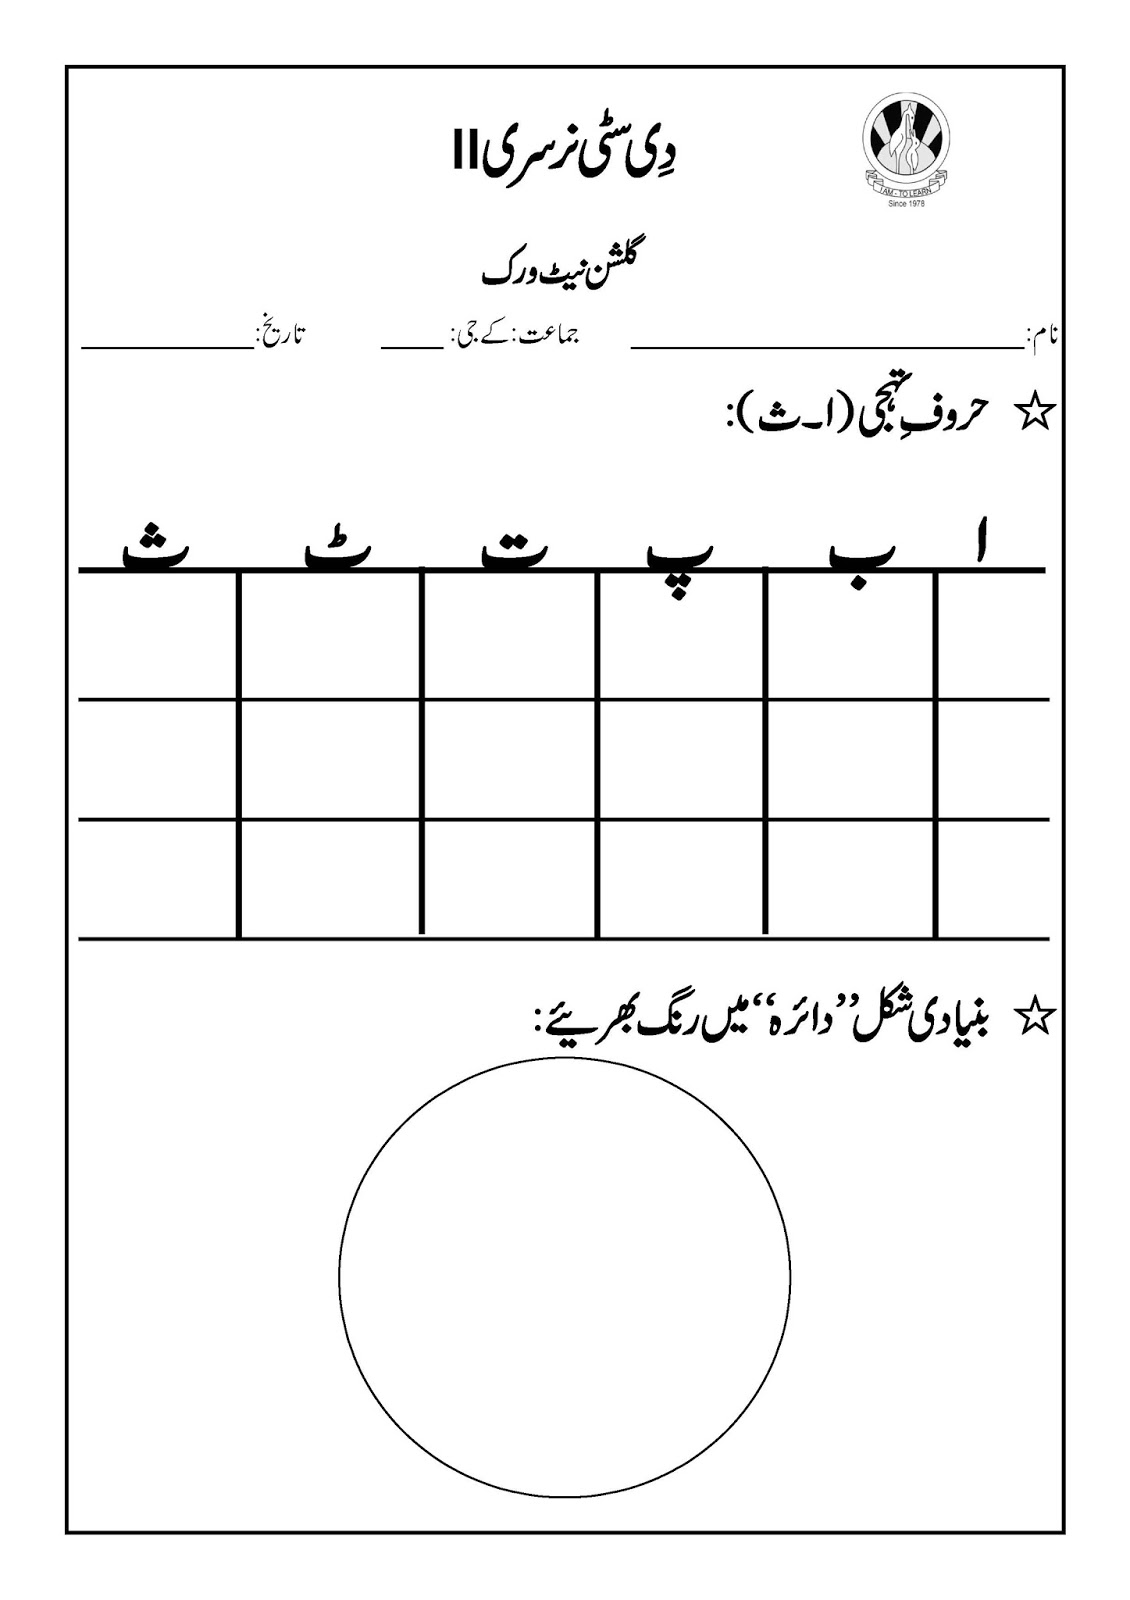 Workbooks worksheets for nursery in english : SR Gulshan The City Nursery-II: KUWA, English and Urdu Worksheets